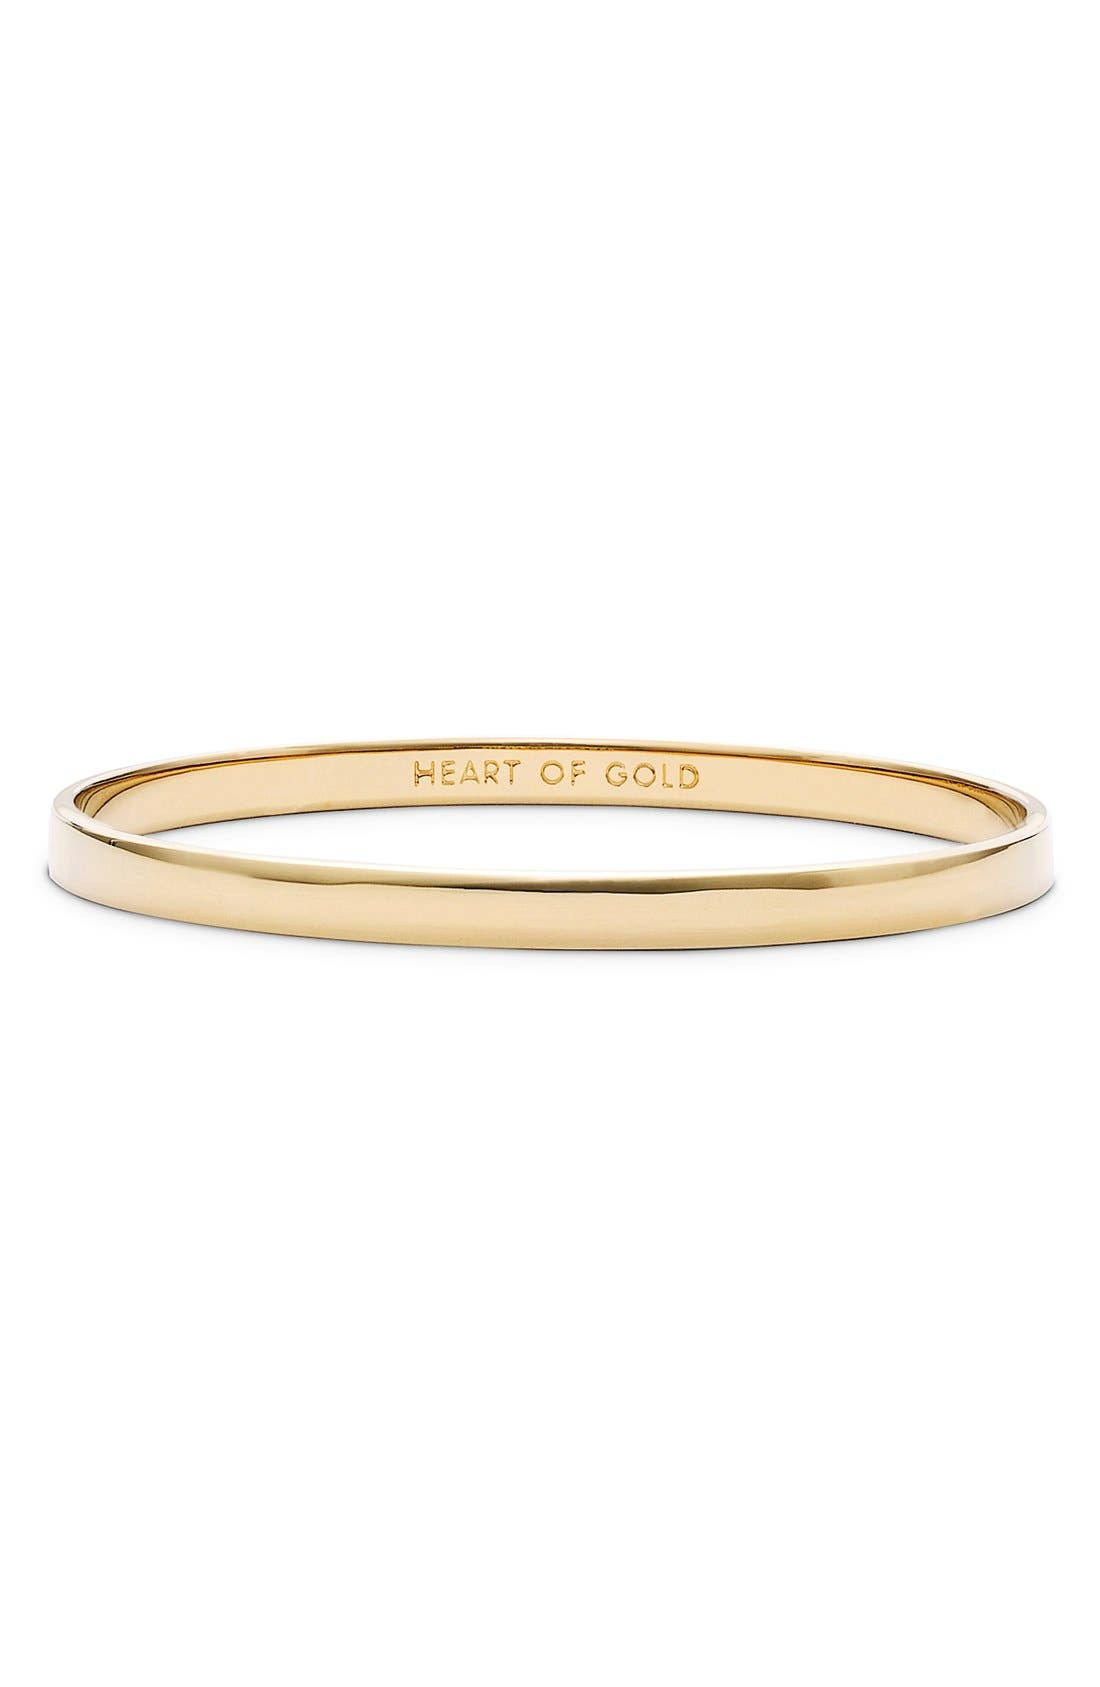 Main Image - kate spade new york 'idiom - heart of gold' bangle